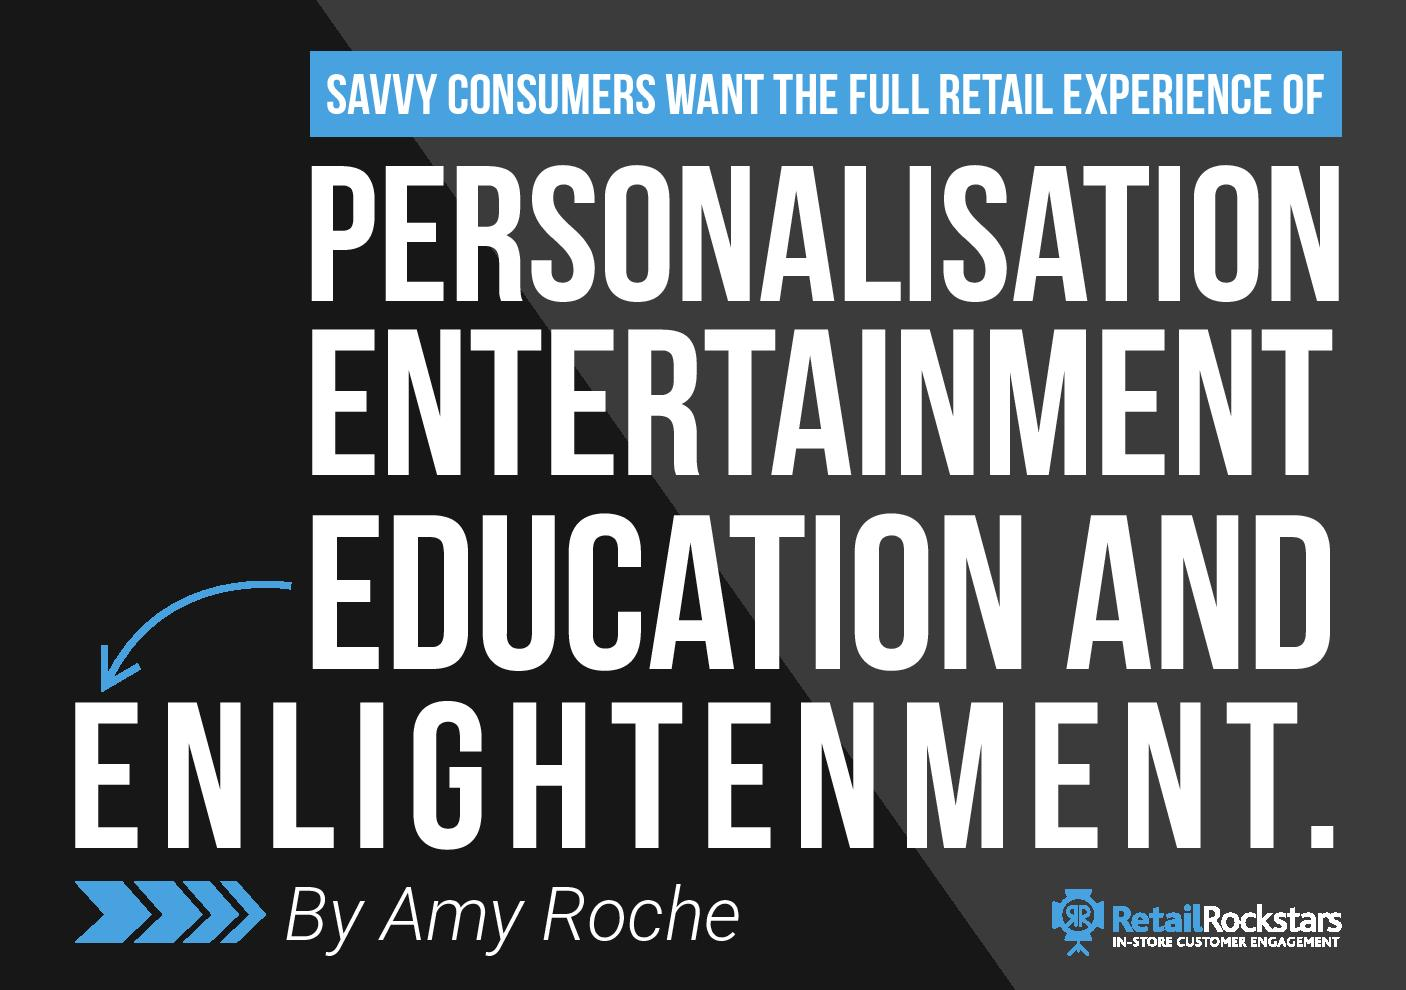 retail experience, in-store experience, customer experience, personalisation, entertainment, enlightenment